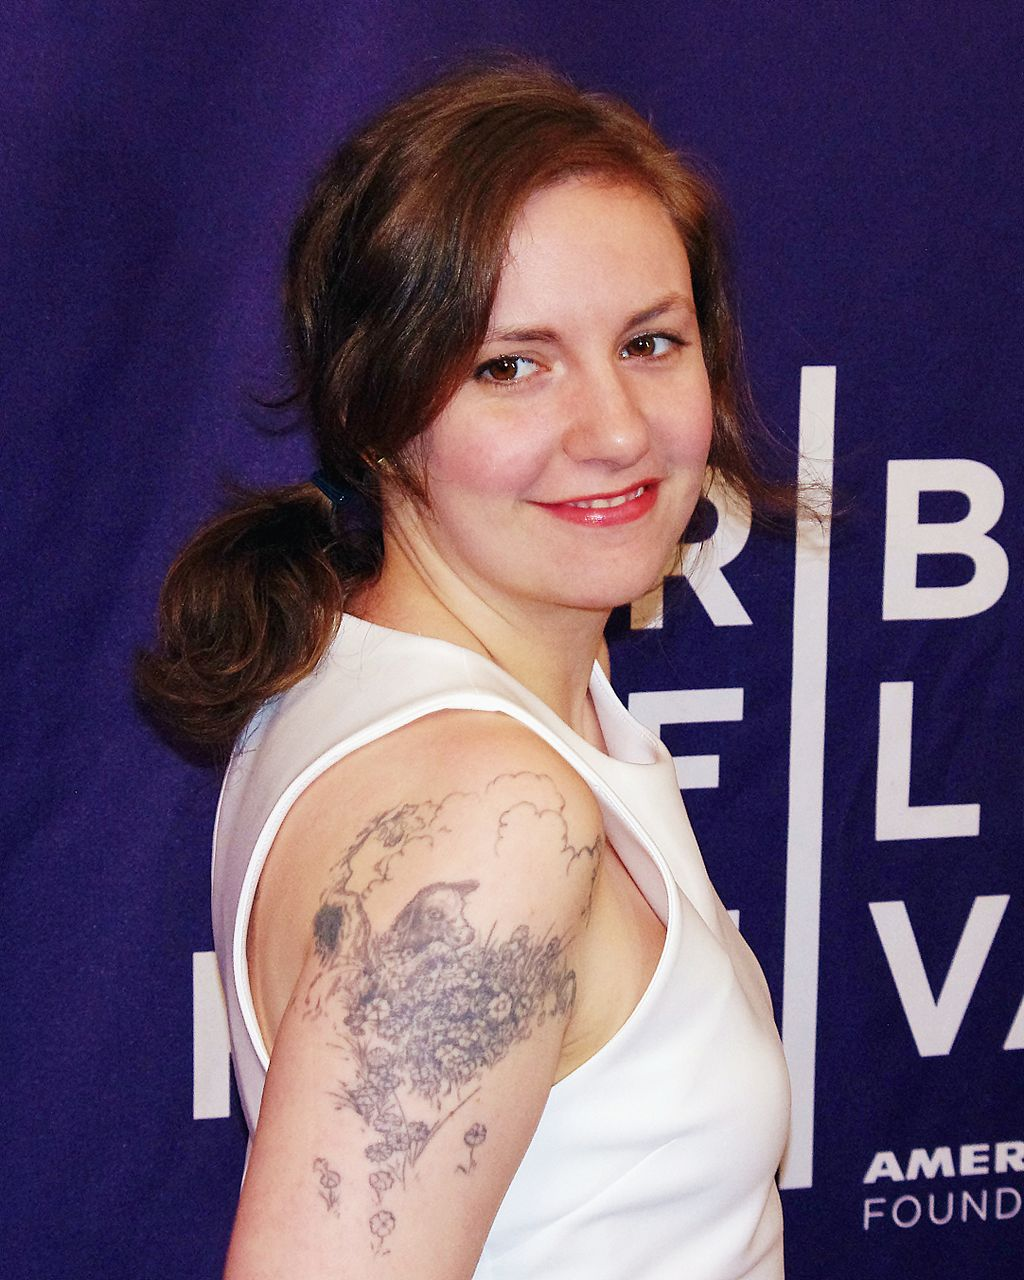 It's Not About Lena Dunham's Choice; It Never HasBeen